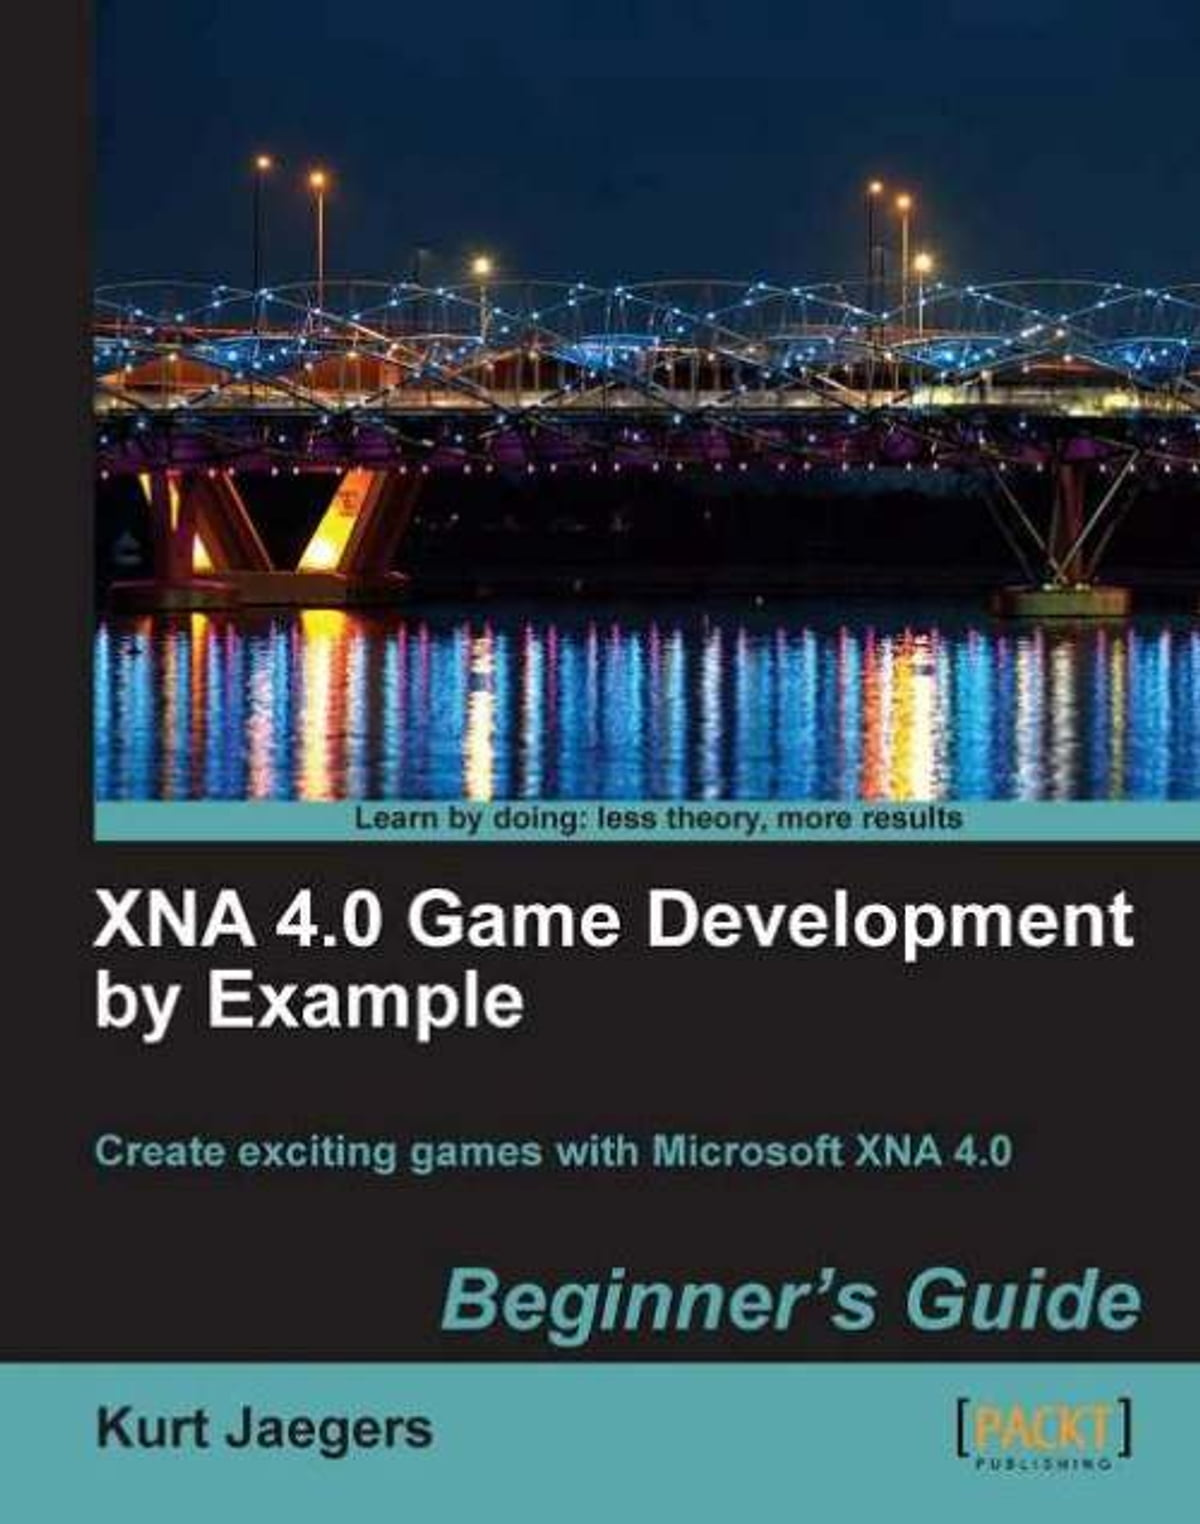 XNA 4.0 Game Development by Example: Beginner's Guide eBook by Kurt Jaegers  - 9781849690676 | Rakuten Kobo